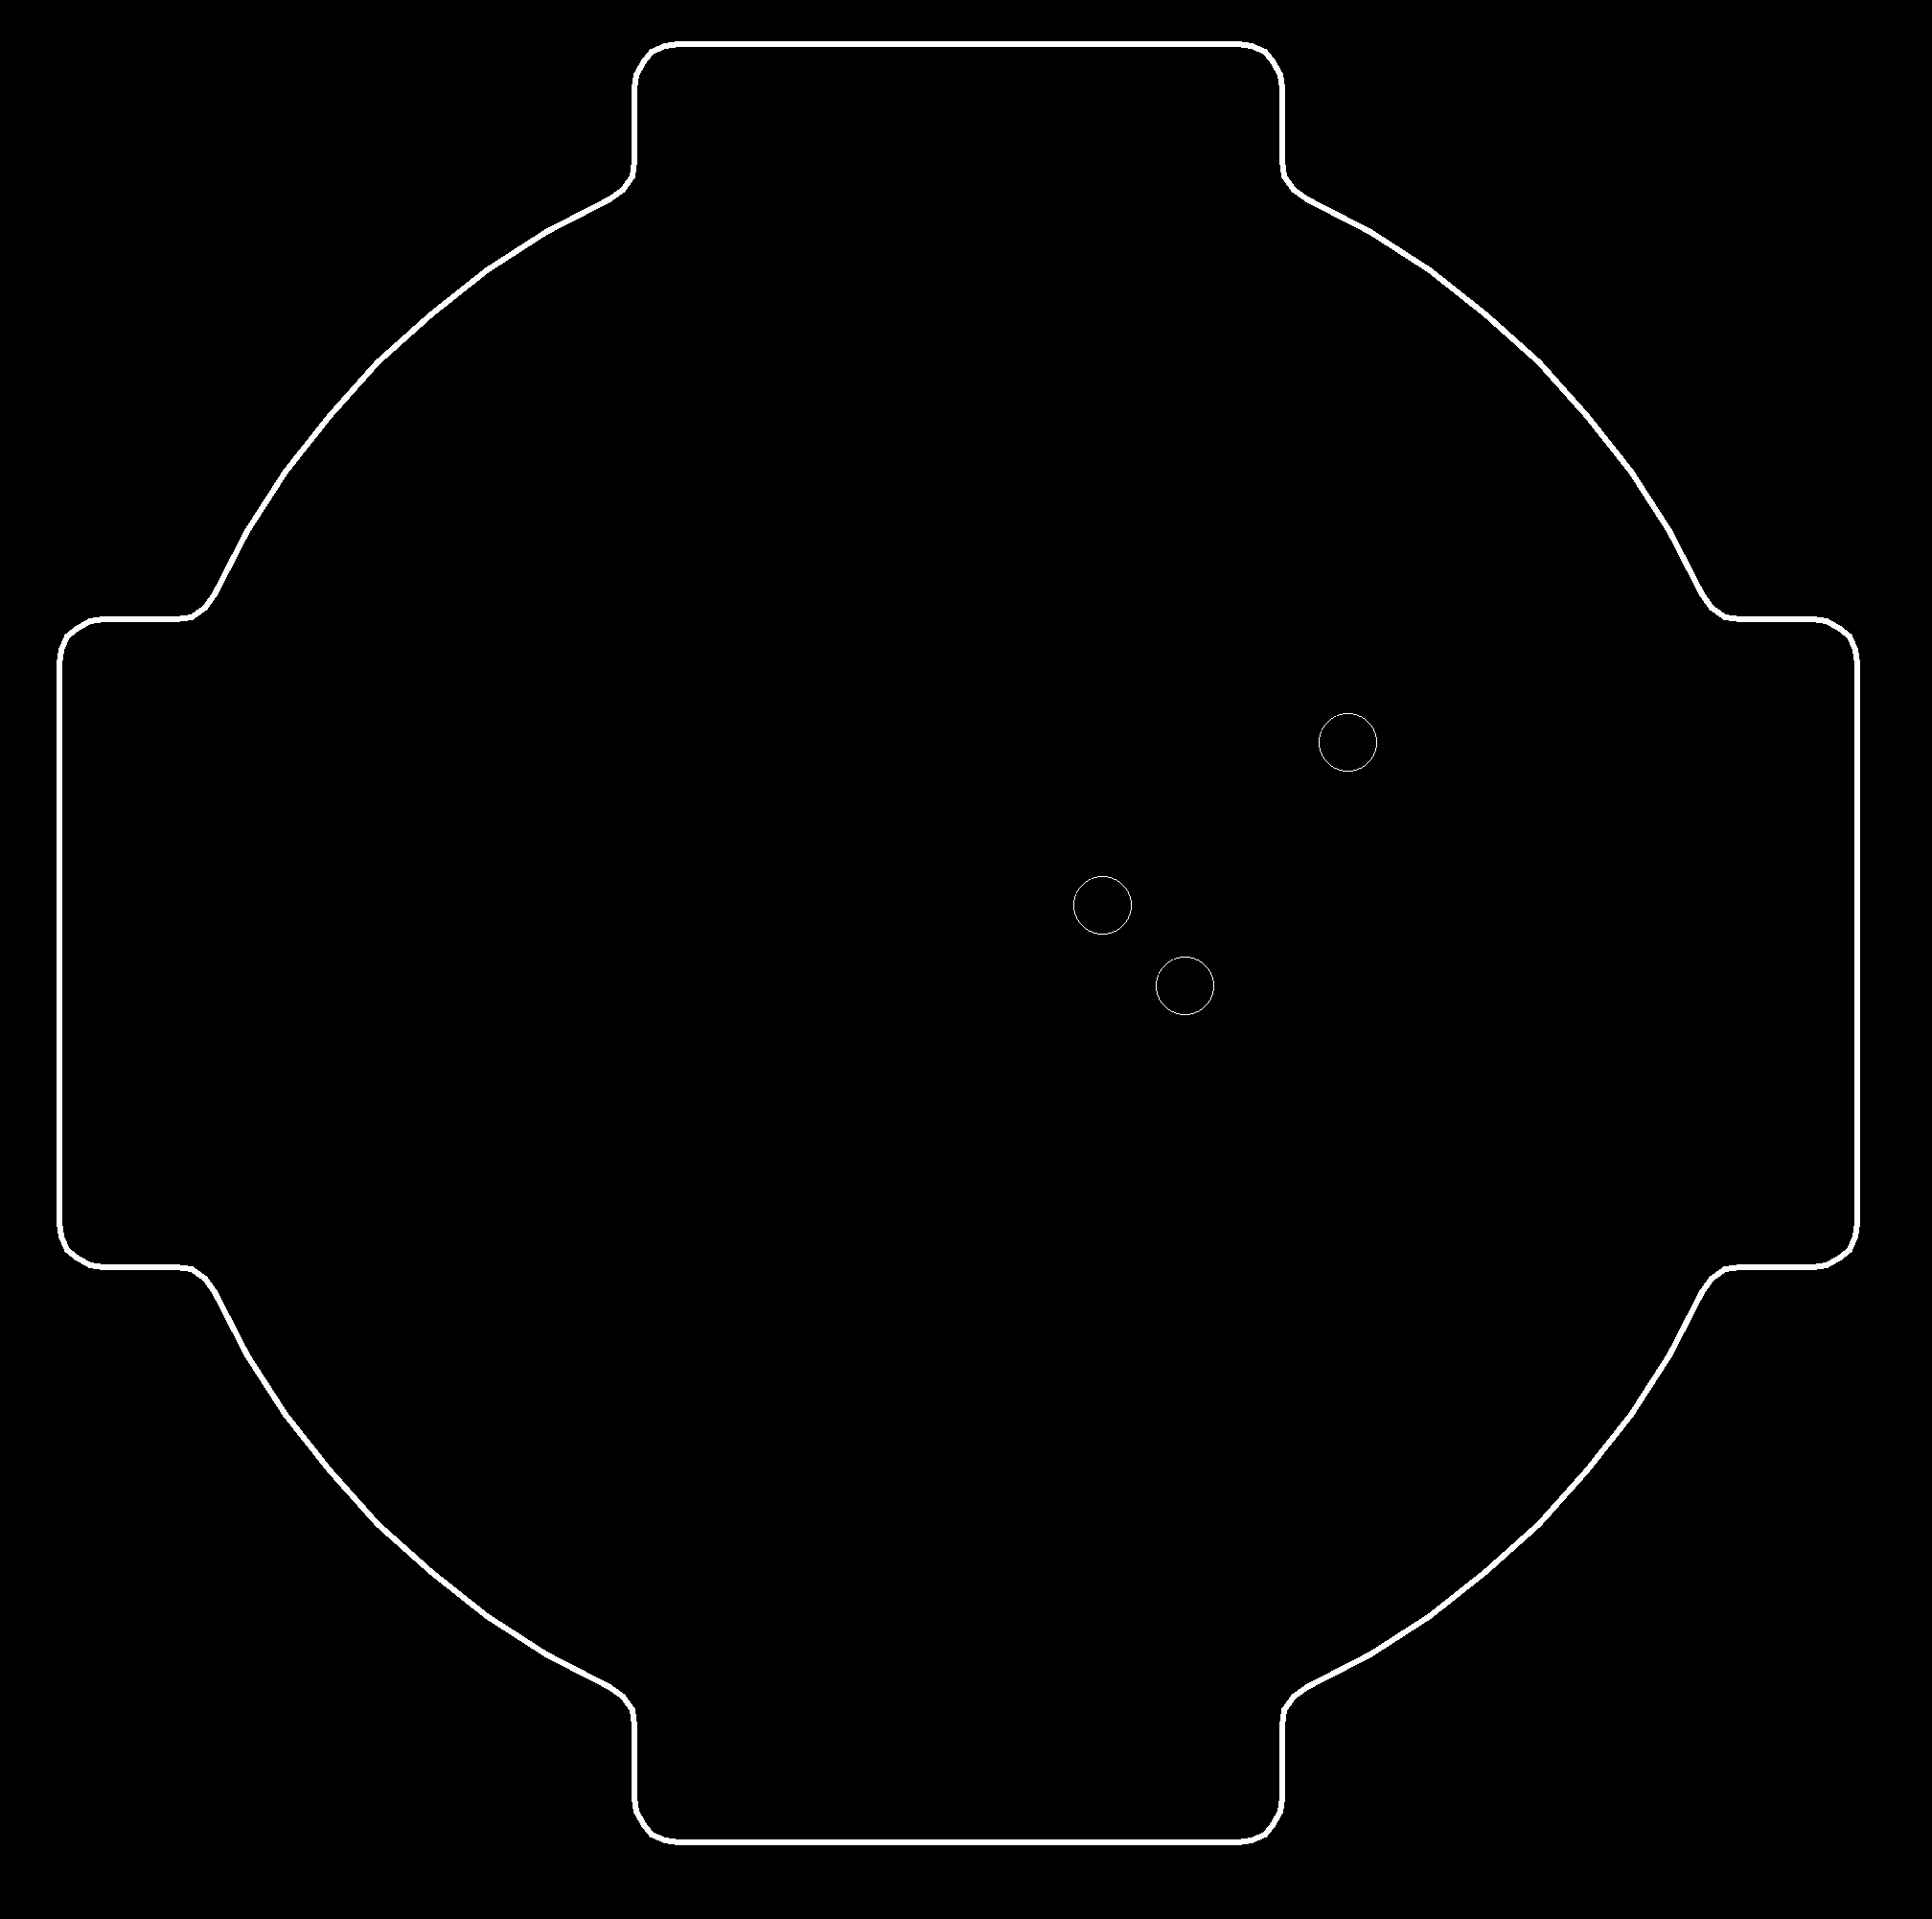 v2/loadcell-main.sts.png